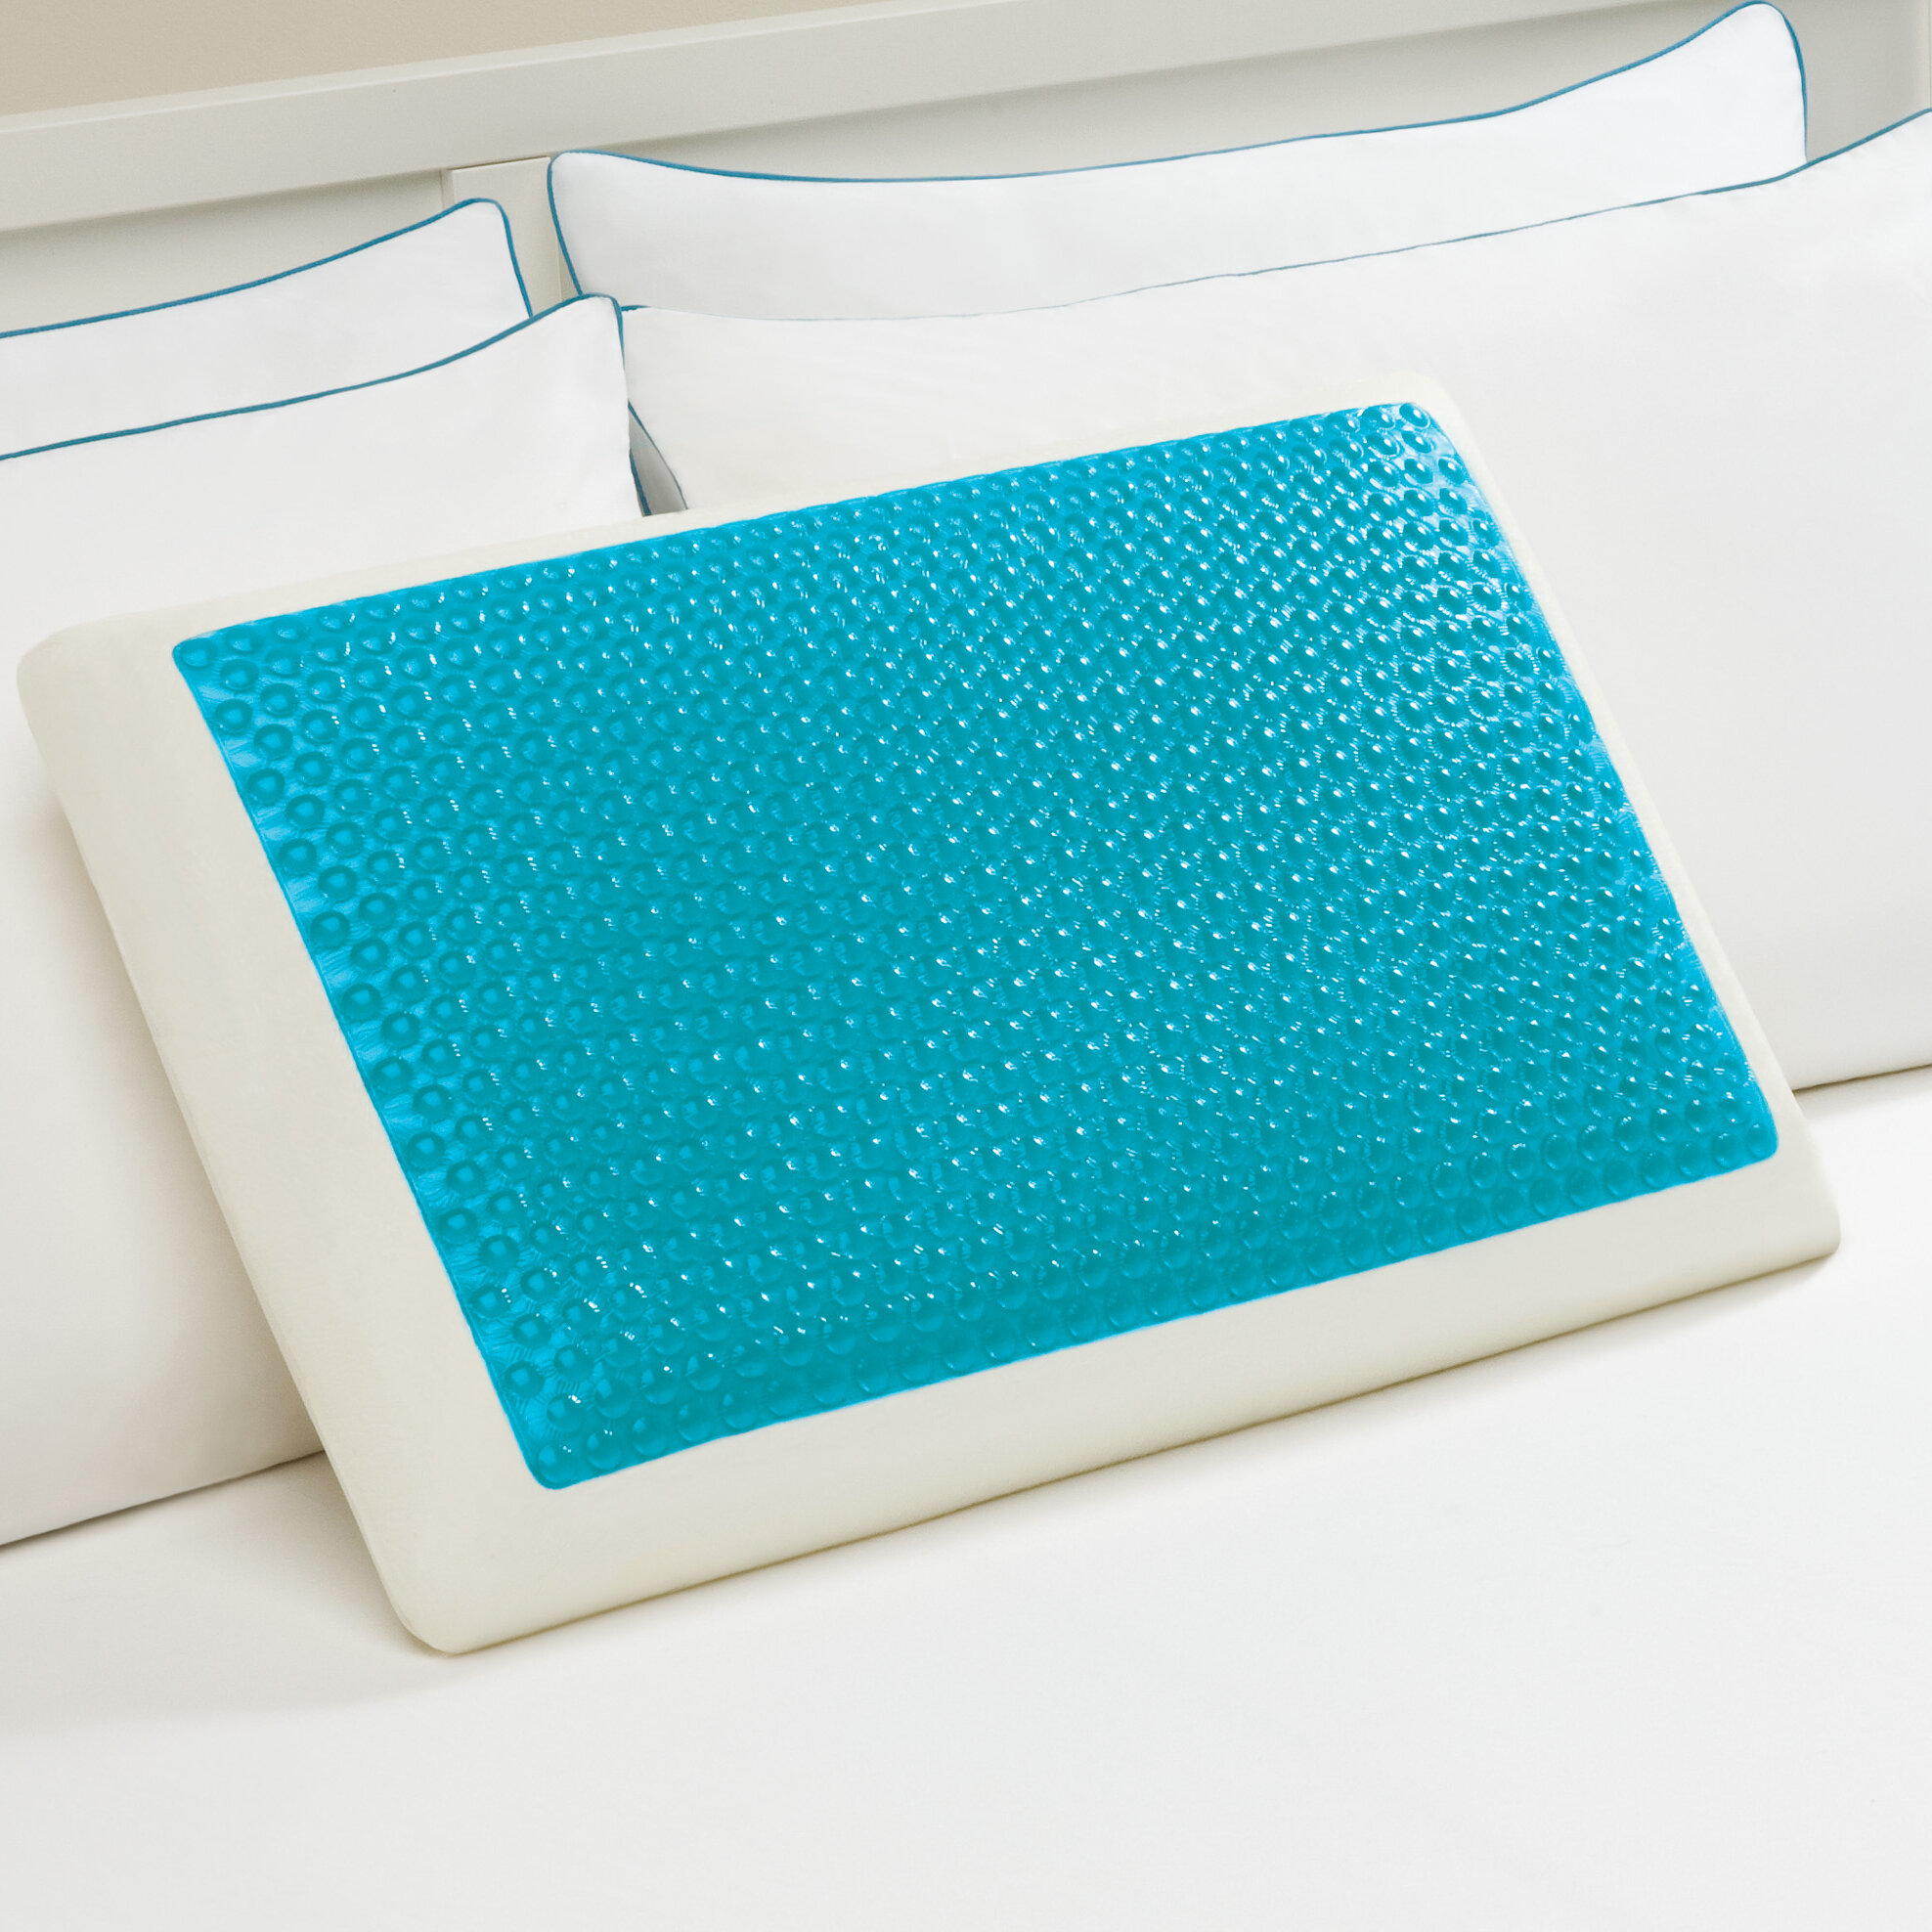 gel cooling case bed productdetail b pillow pillows with comfort